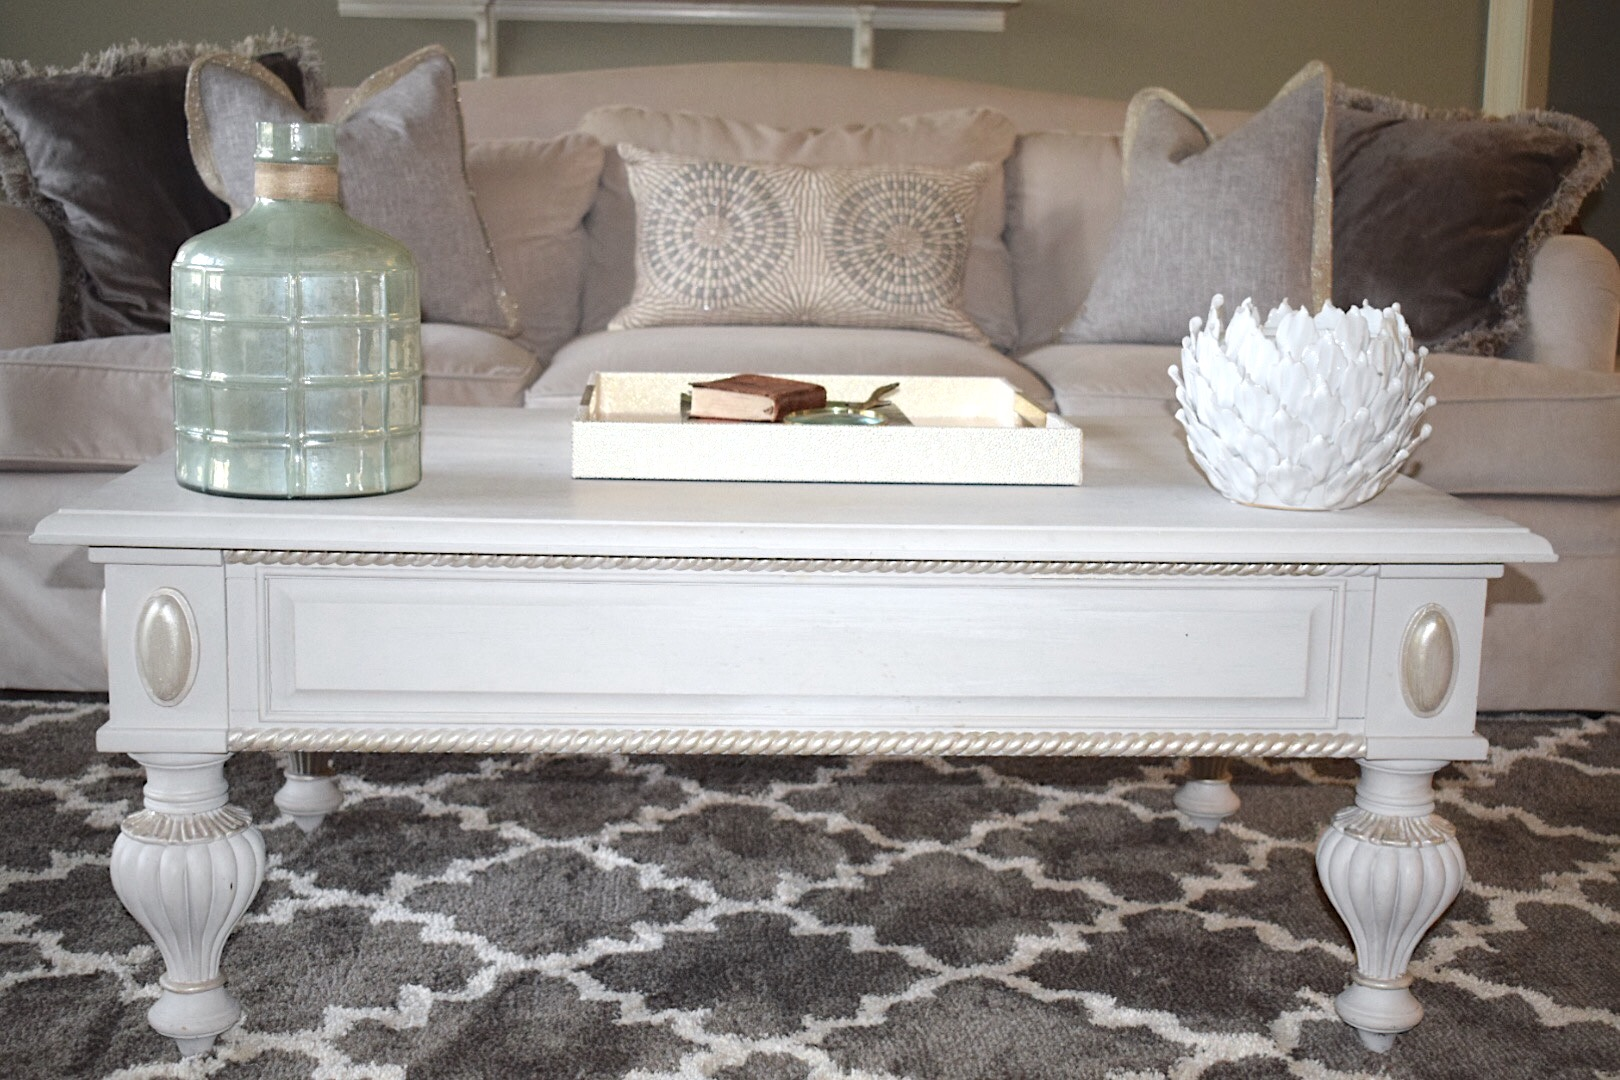 How To Rehab Old Furniture Using Chalk Paint Crockpot Empire - Chalkboard paint coffee table